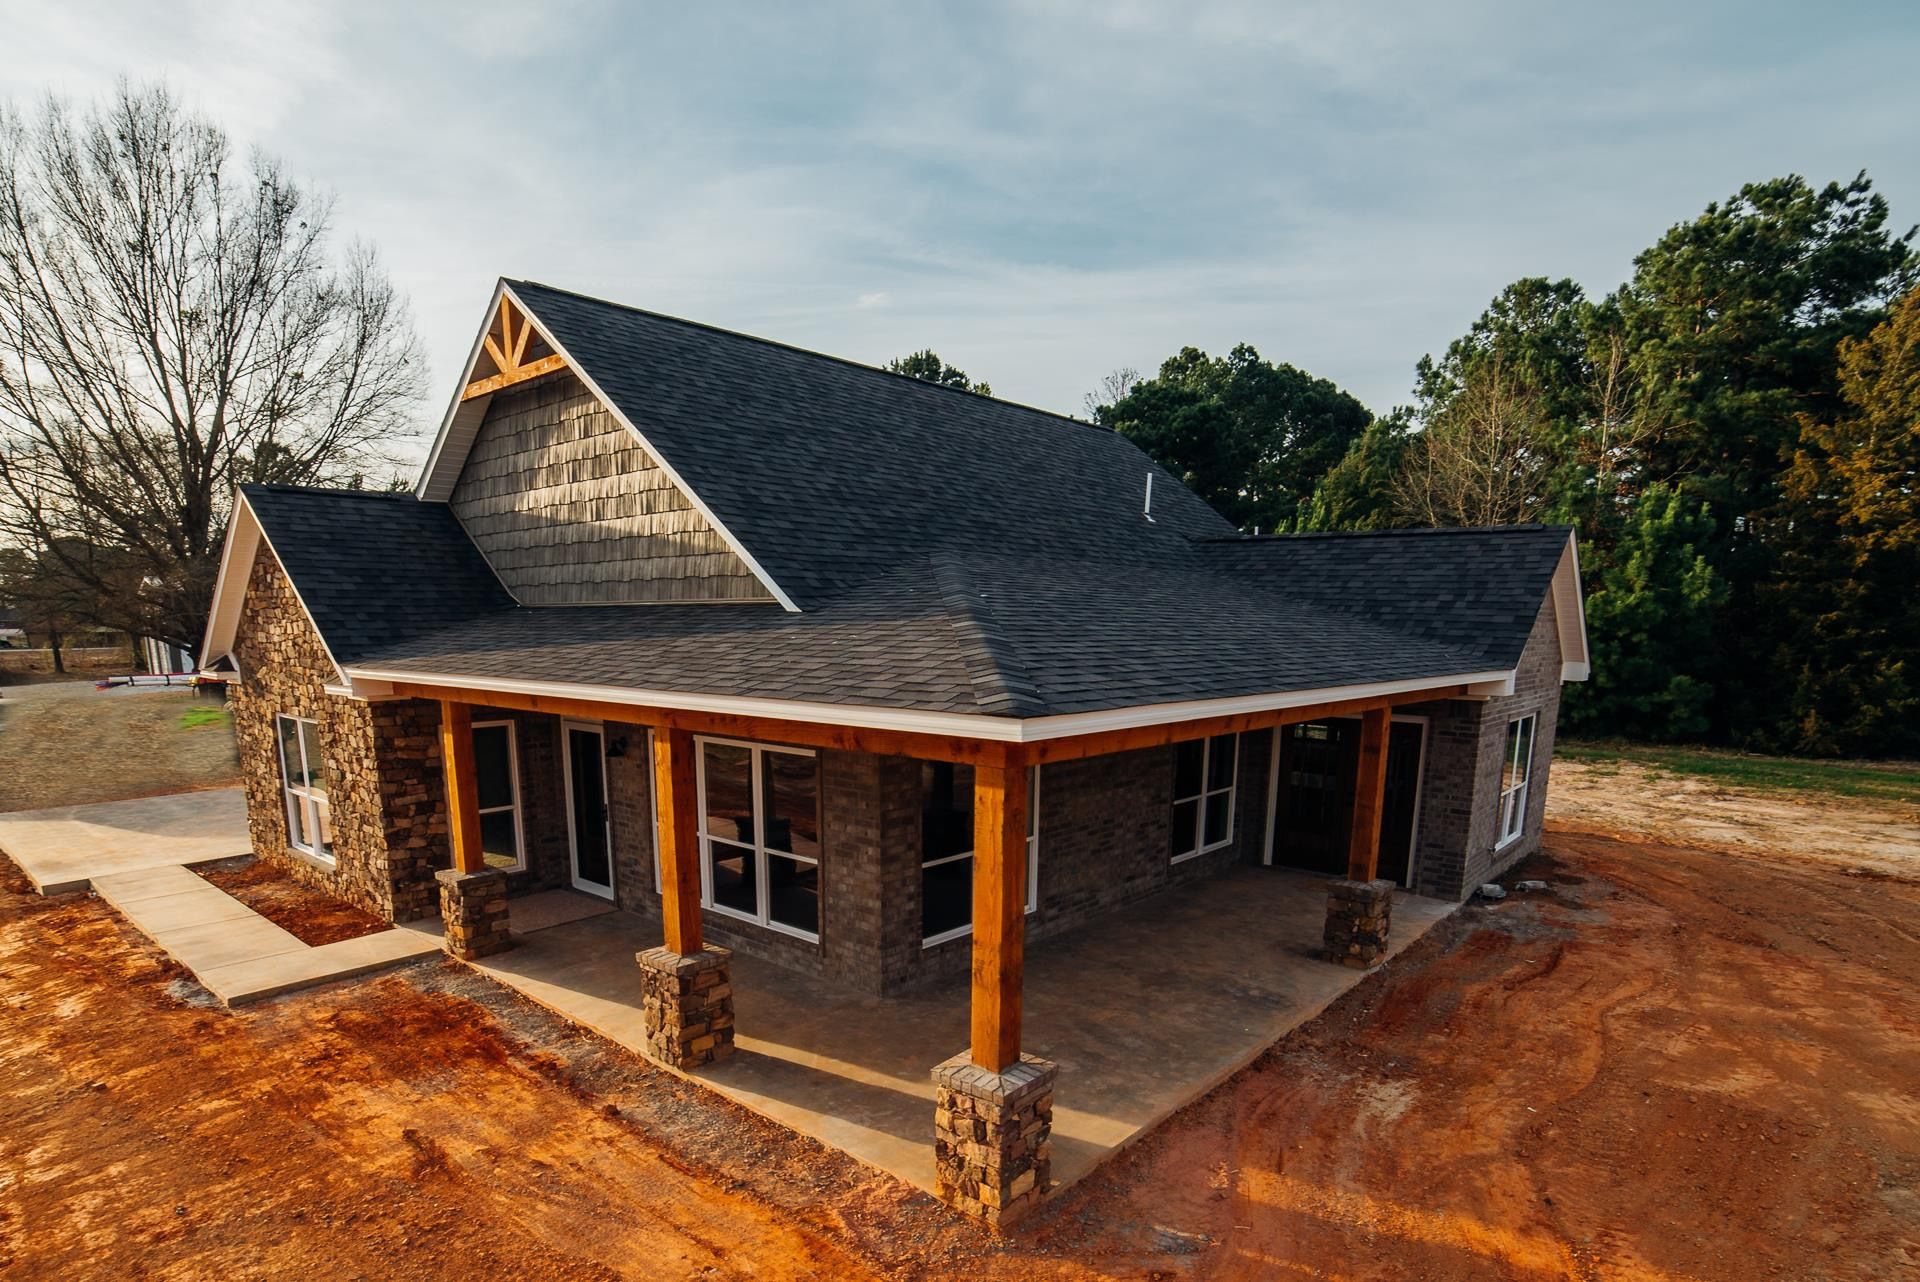 Pin by Katlynn Blacksmith on We're Building! | House ...